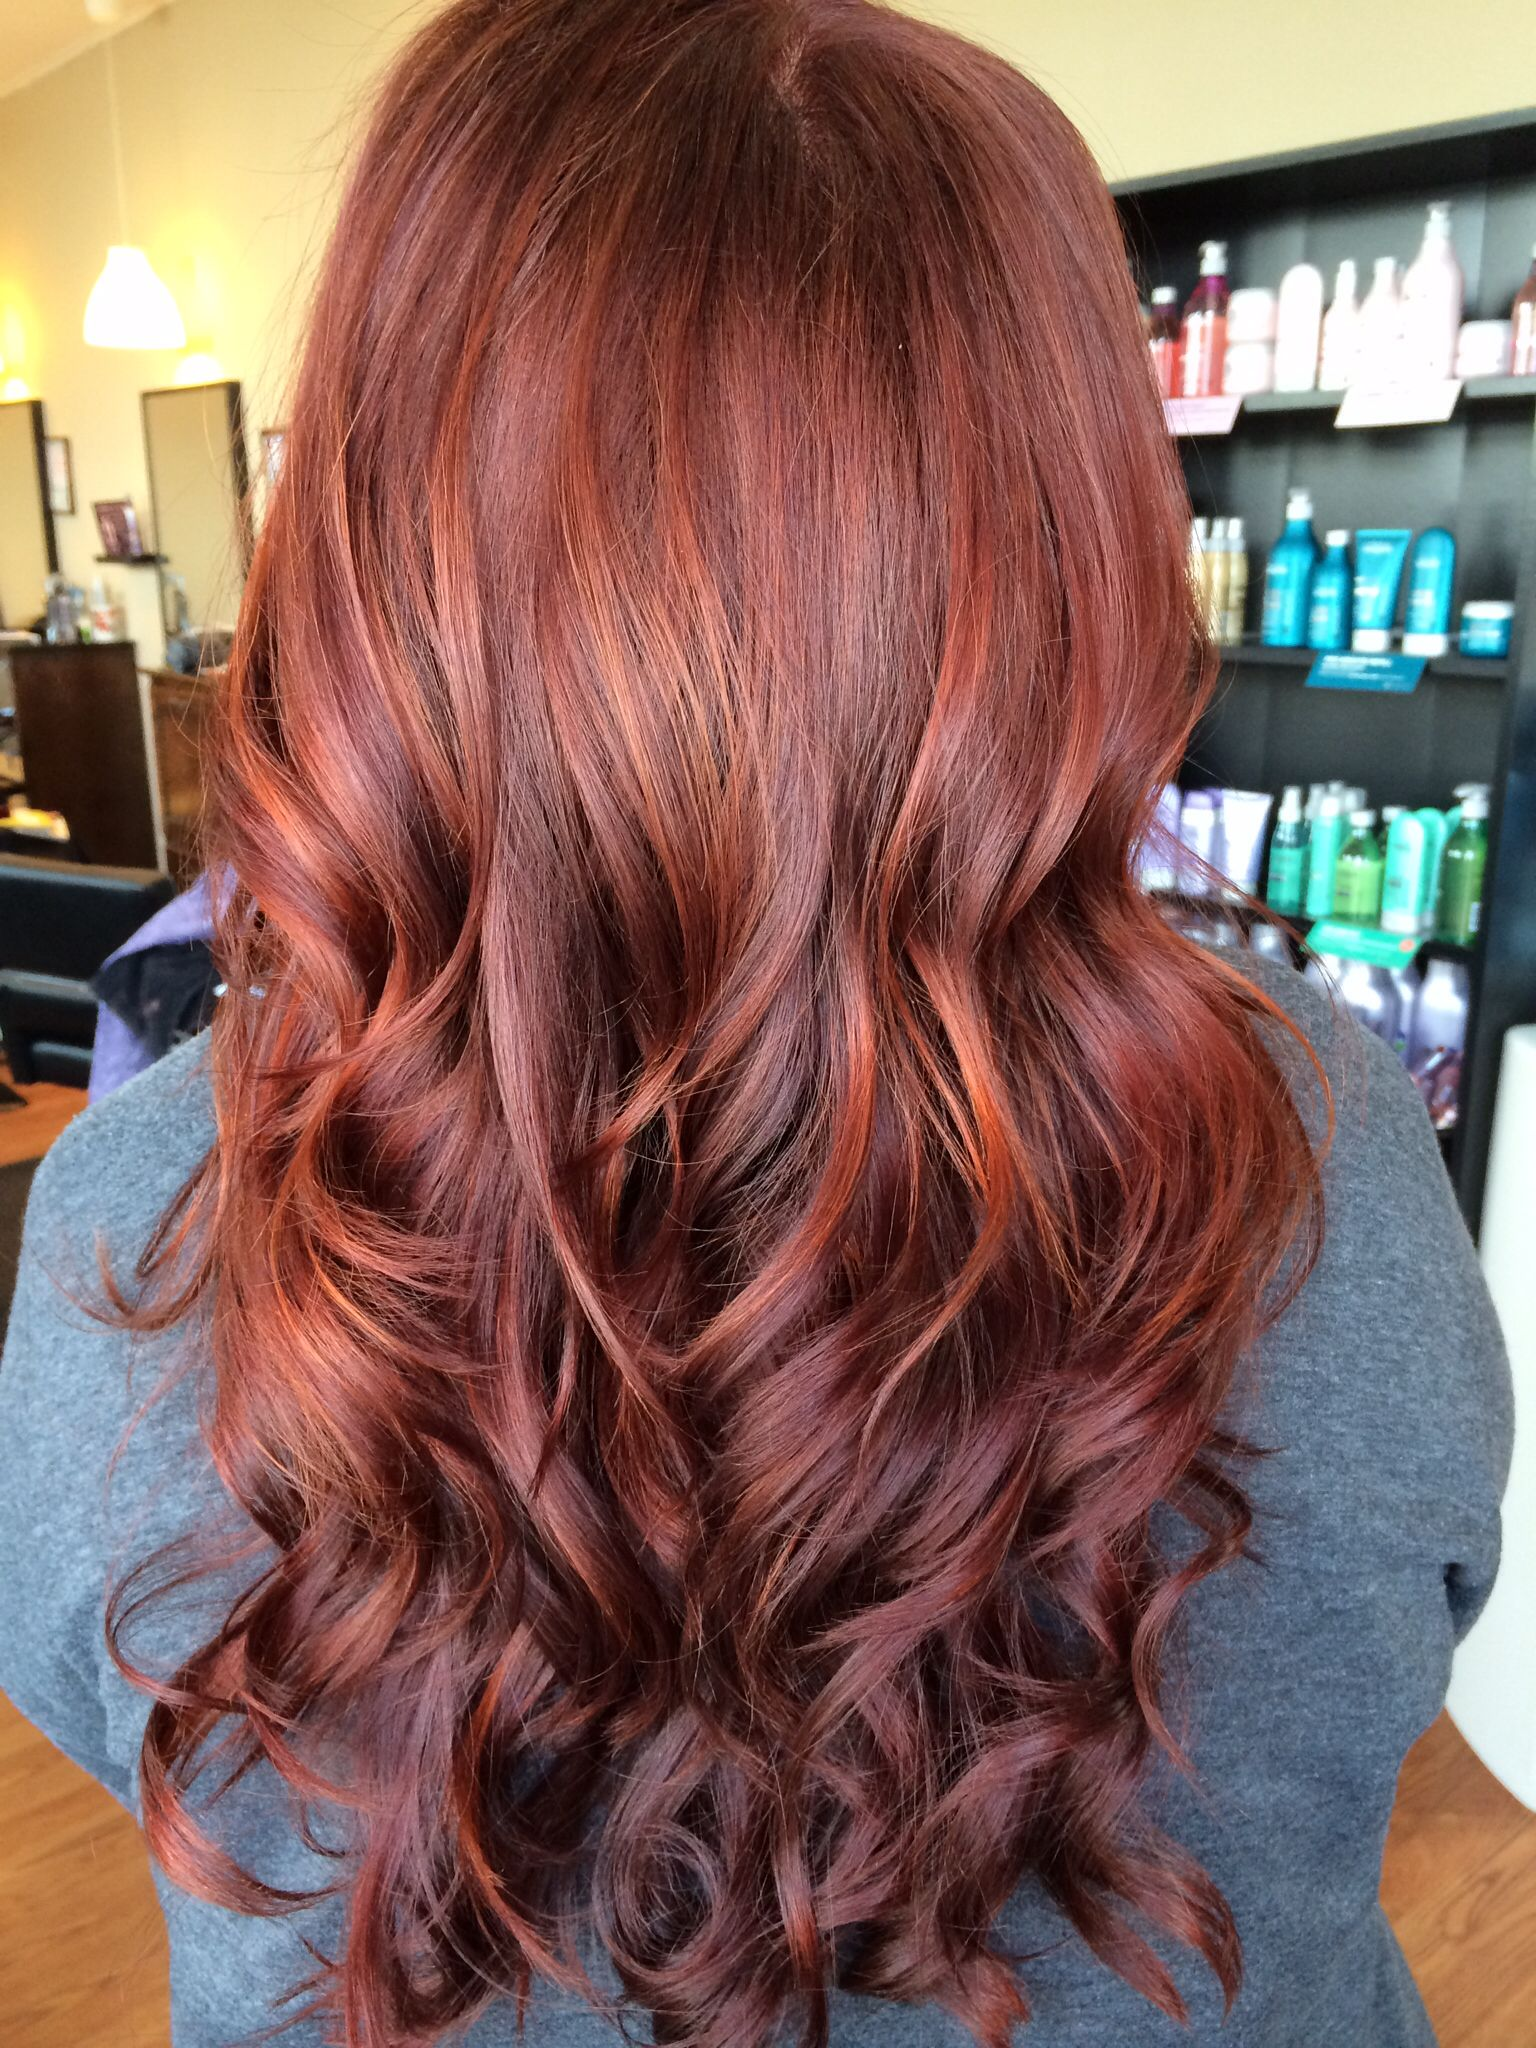 Balayage Highlights Red Hair Hair On Pinterest Balayage